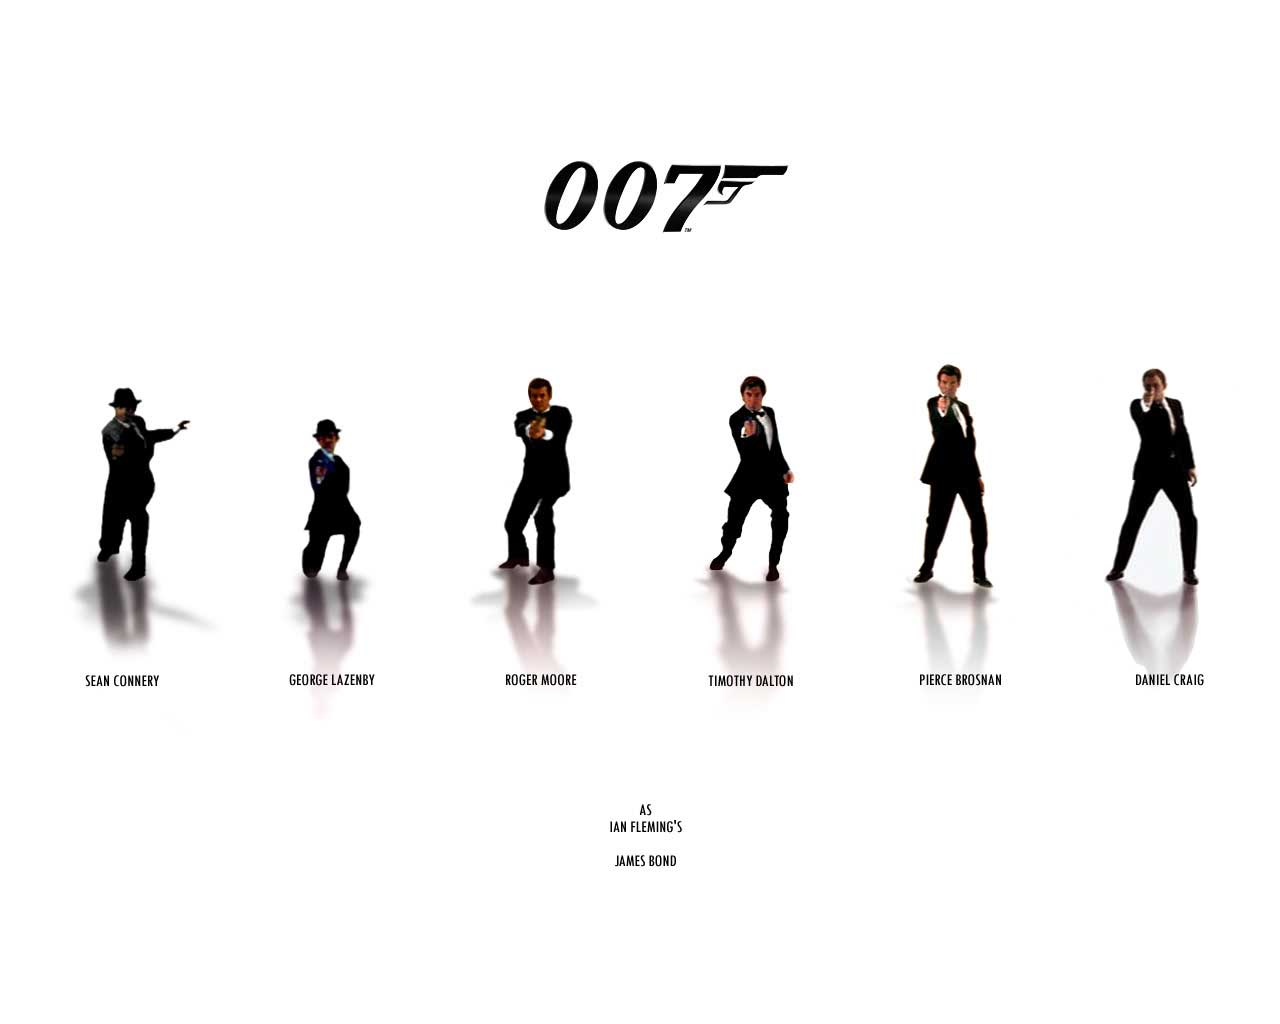 James Bond 007 Wallpaper 1280x1024